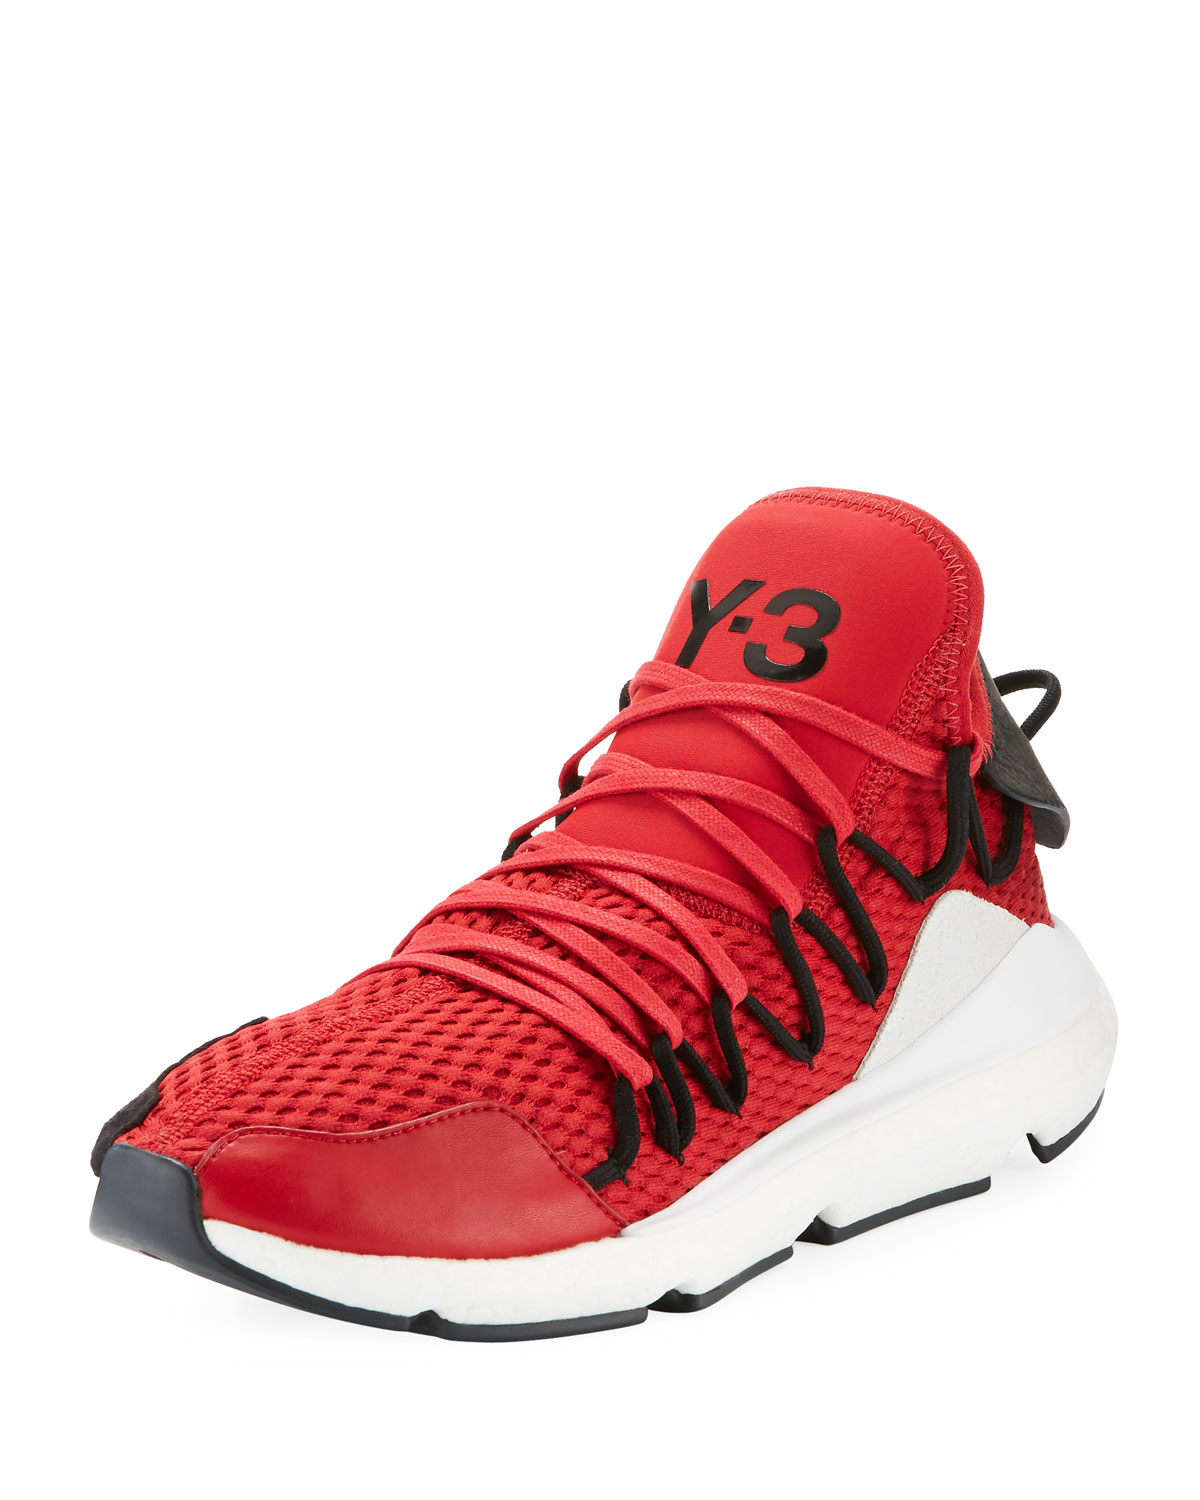 08a8bb3911240 Y-3 Men s Kusari Boost™ Sneakers